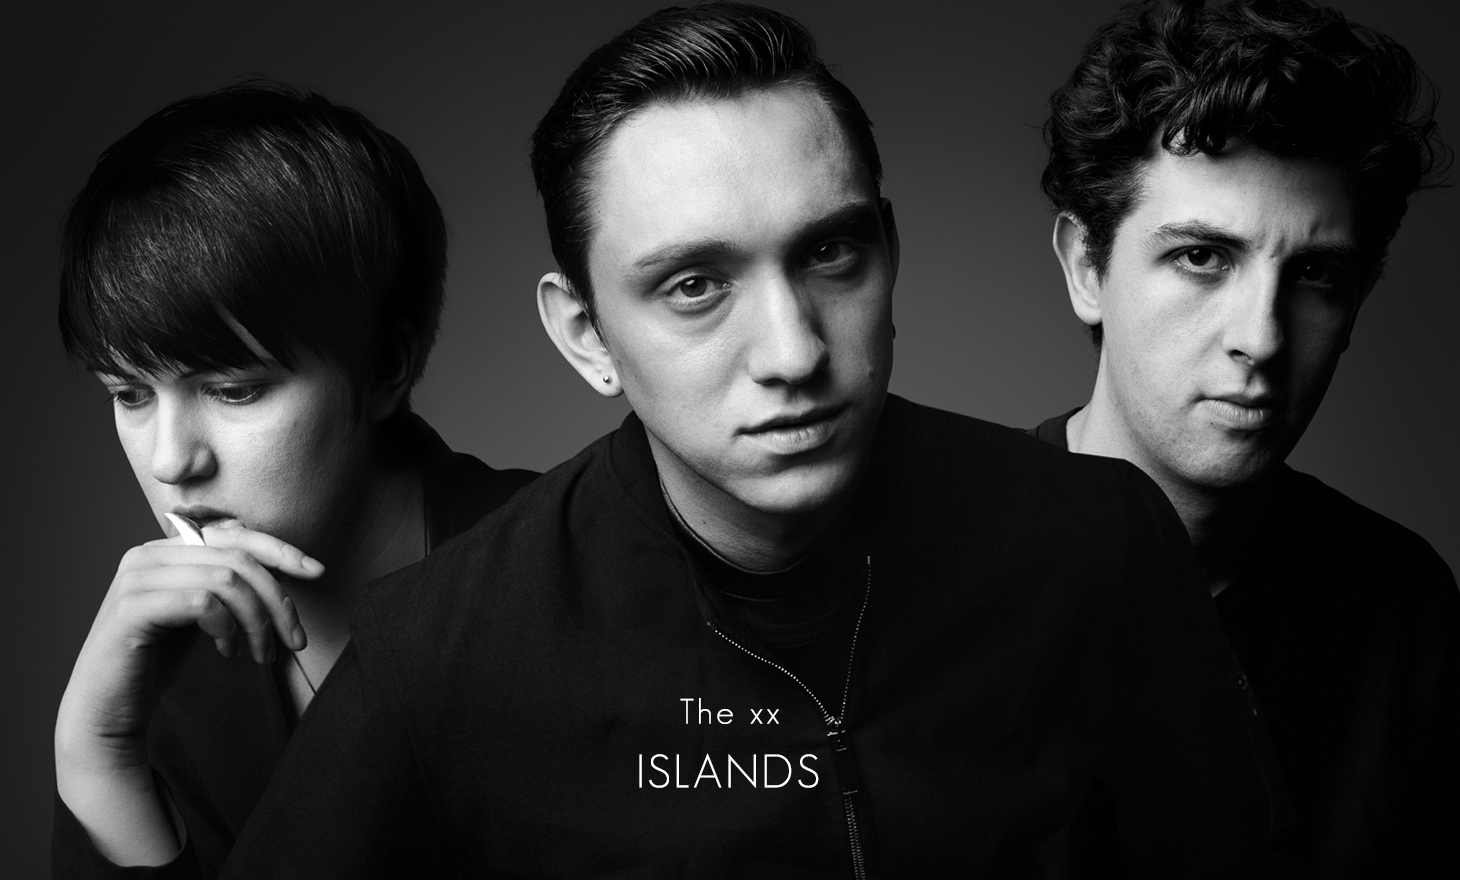 The xx : Islands